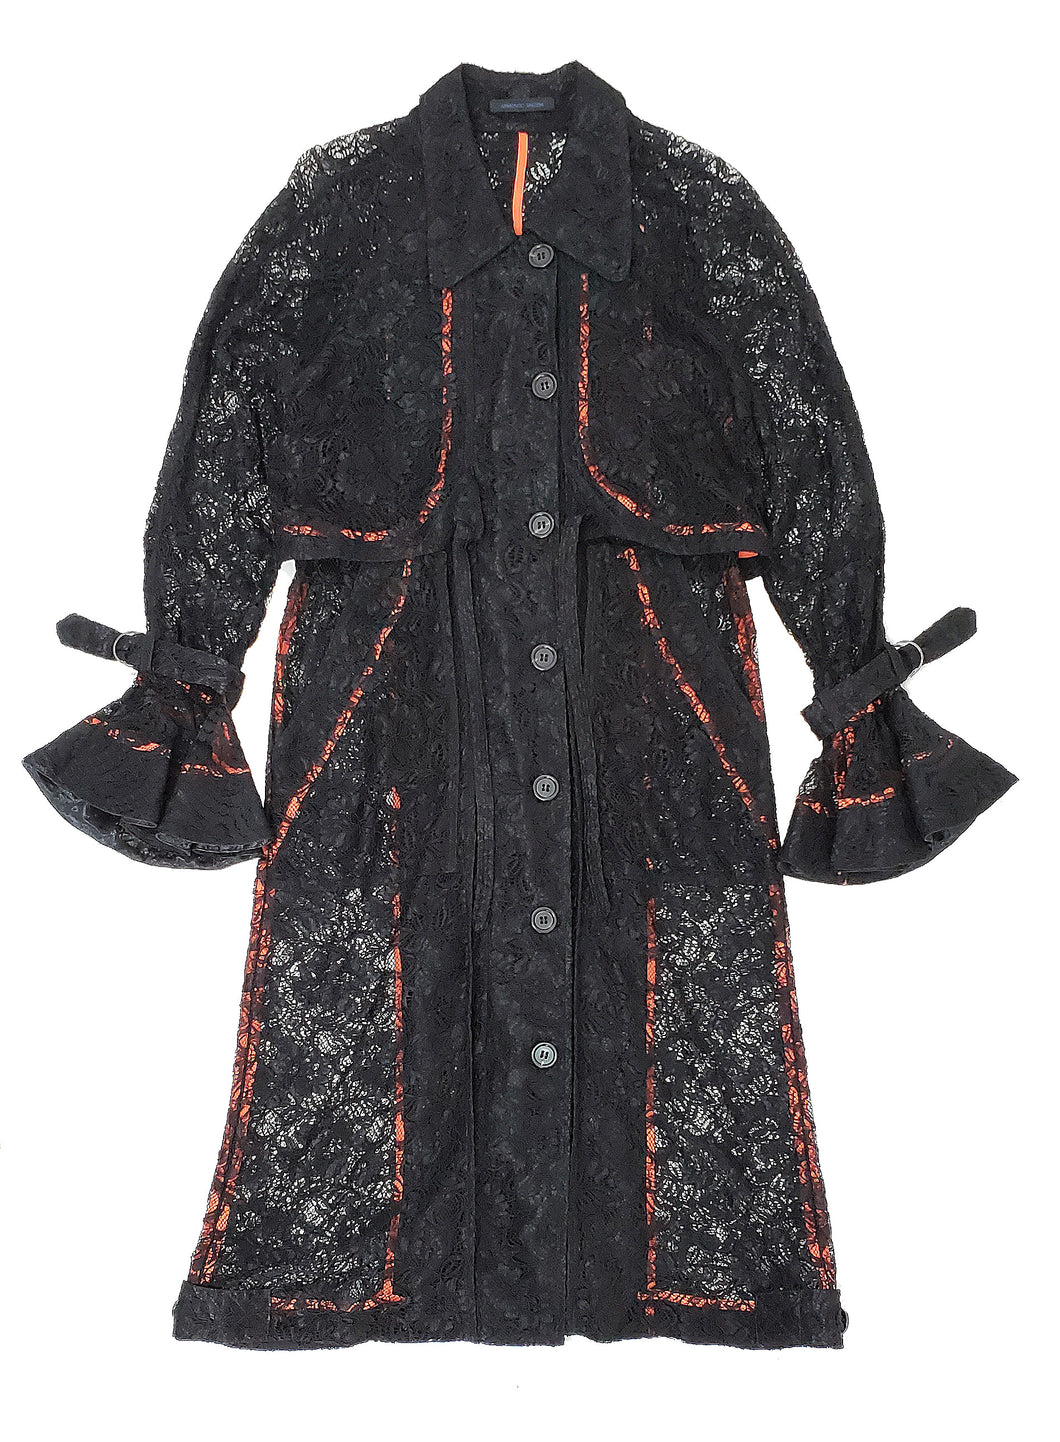 'TC003' Lace trench coat